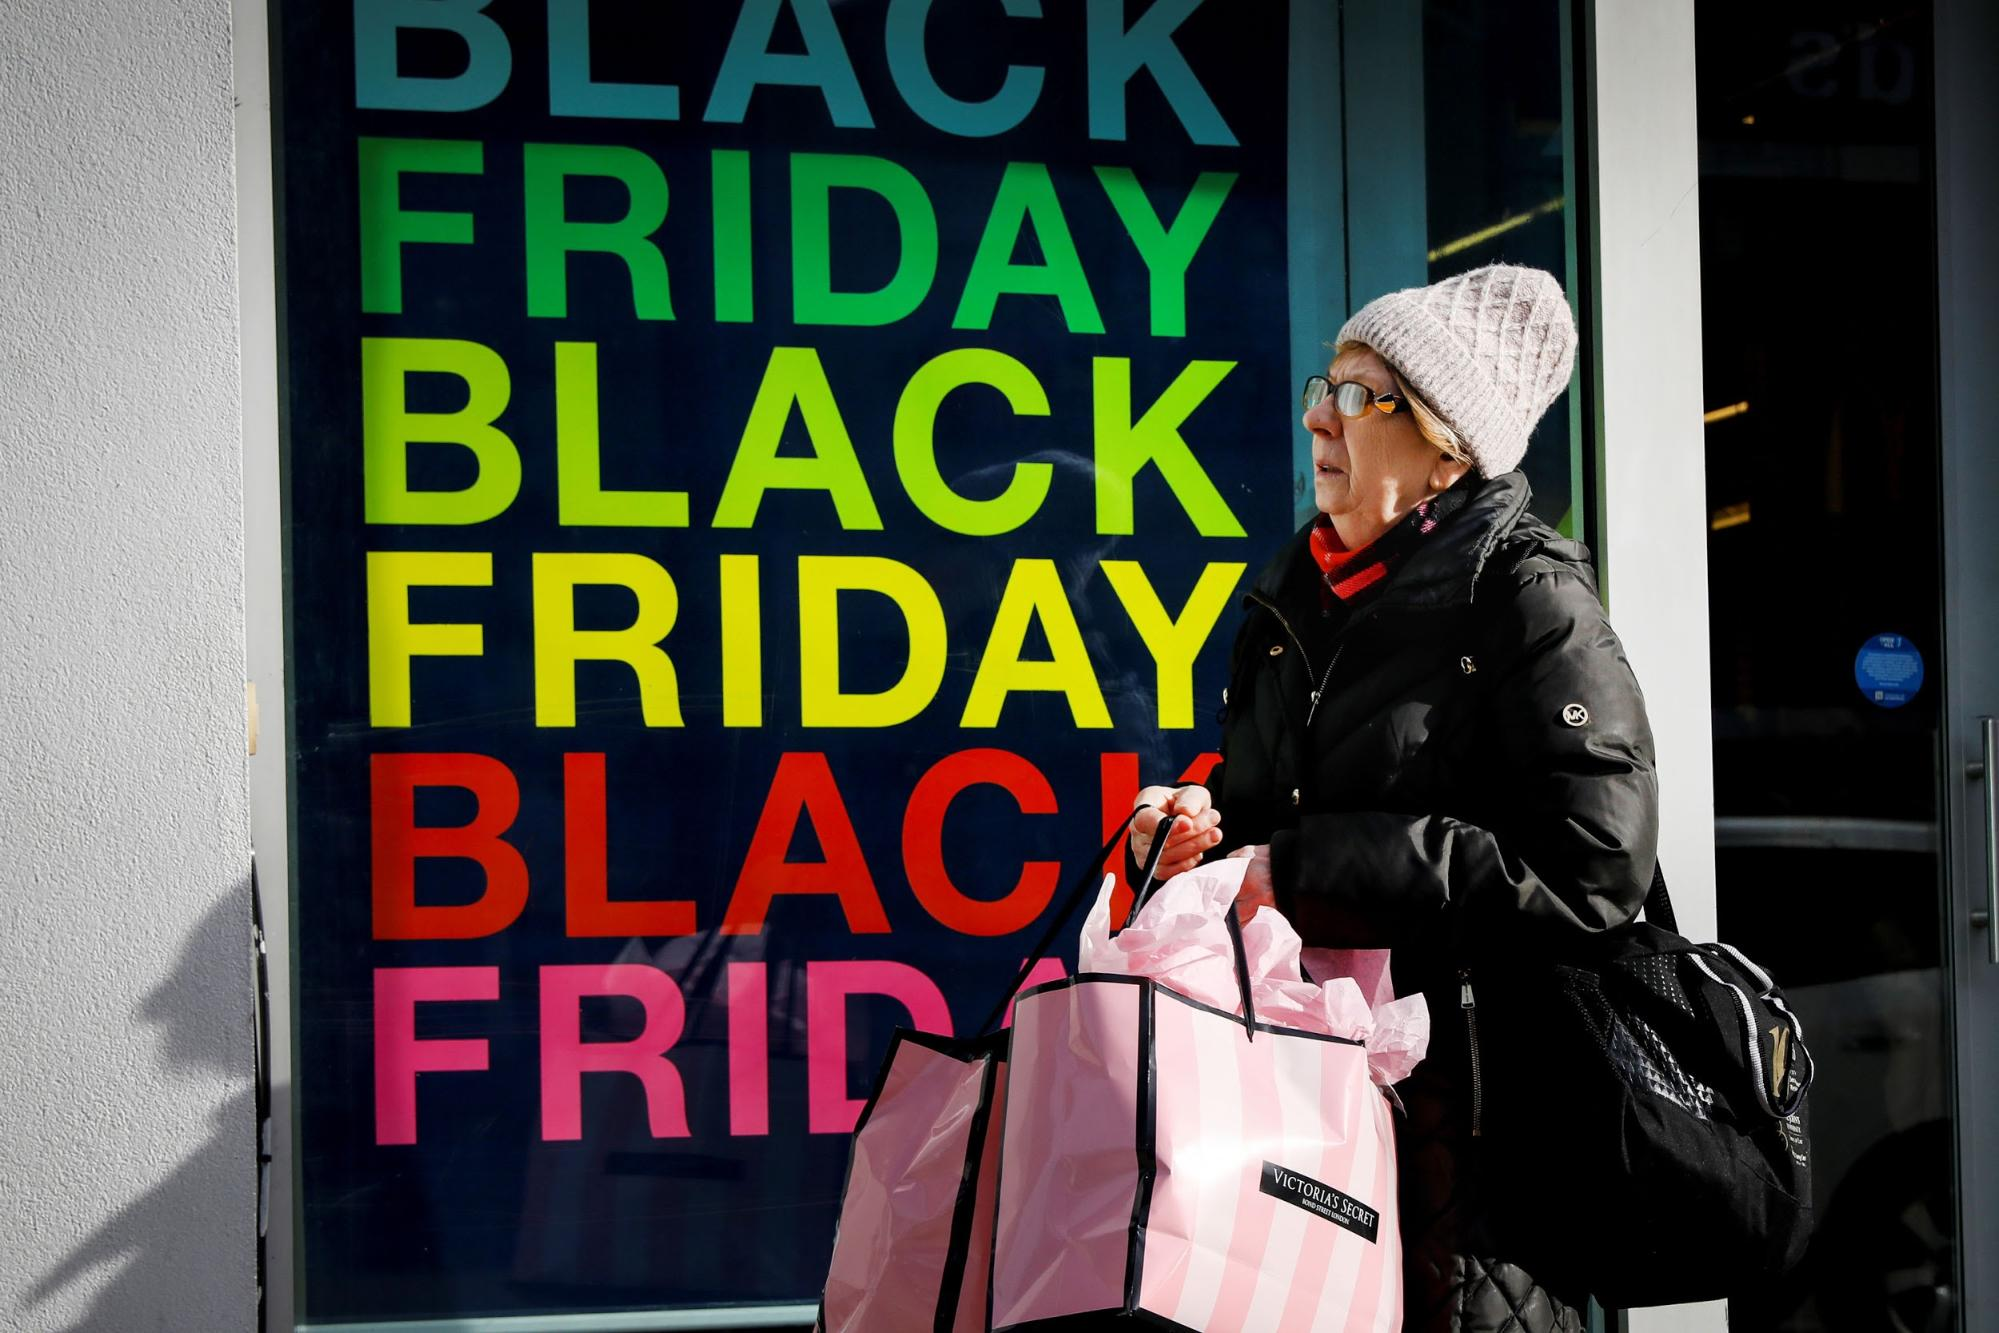 Black friday this year will be quite different due to the pandemic. Source: Media One